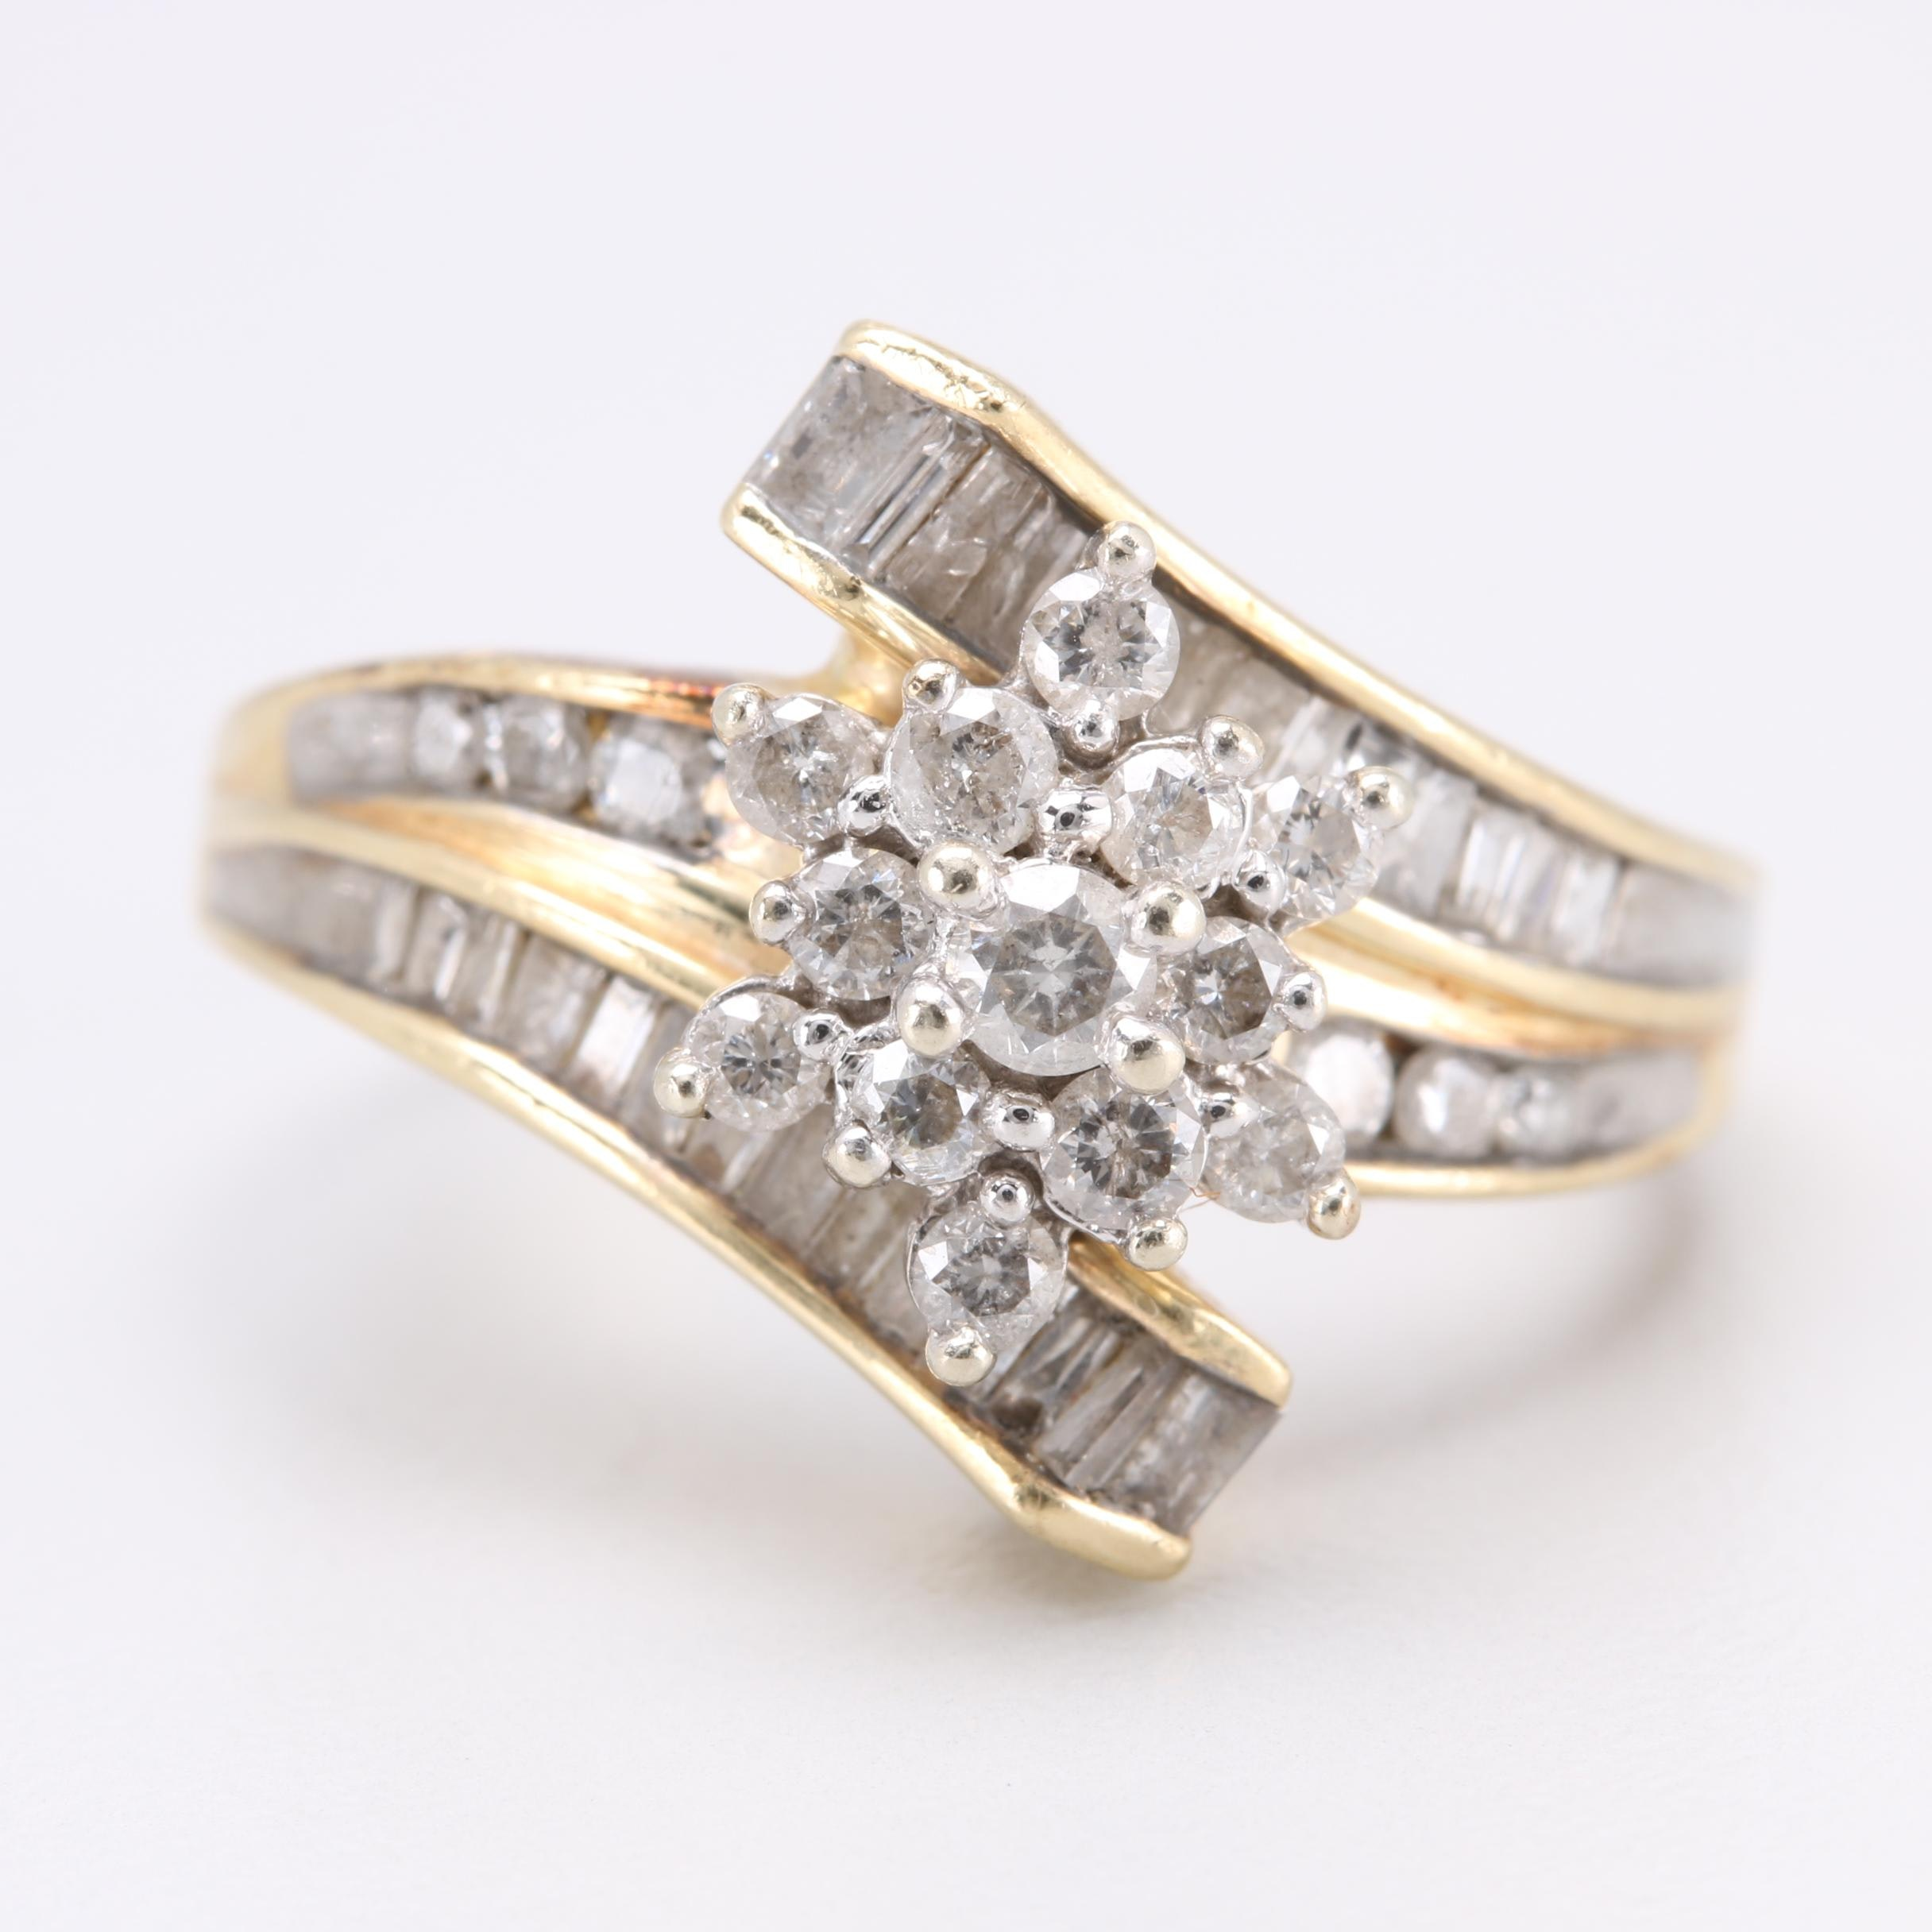 10K Yellow Gold 1.00 CTW Diamond Ring